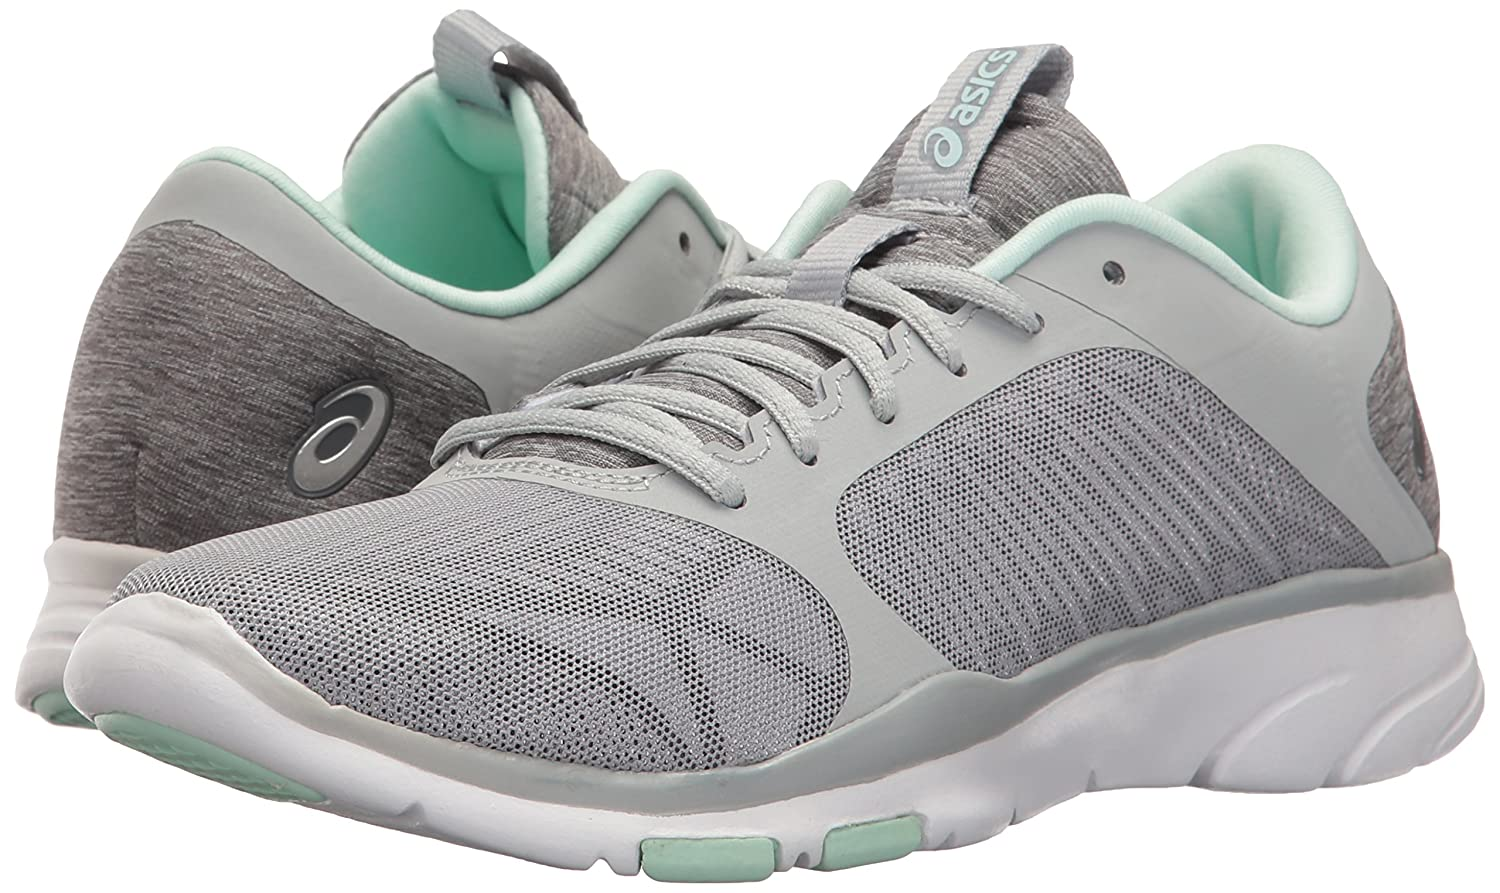 ASICS Women's Gel-Fit Tempo 3 Cross-Trainer Shoe B01H2NF8MM 11.5 B(M) US|Mid Grey/Silver/Bay